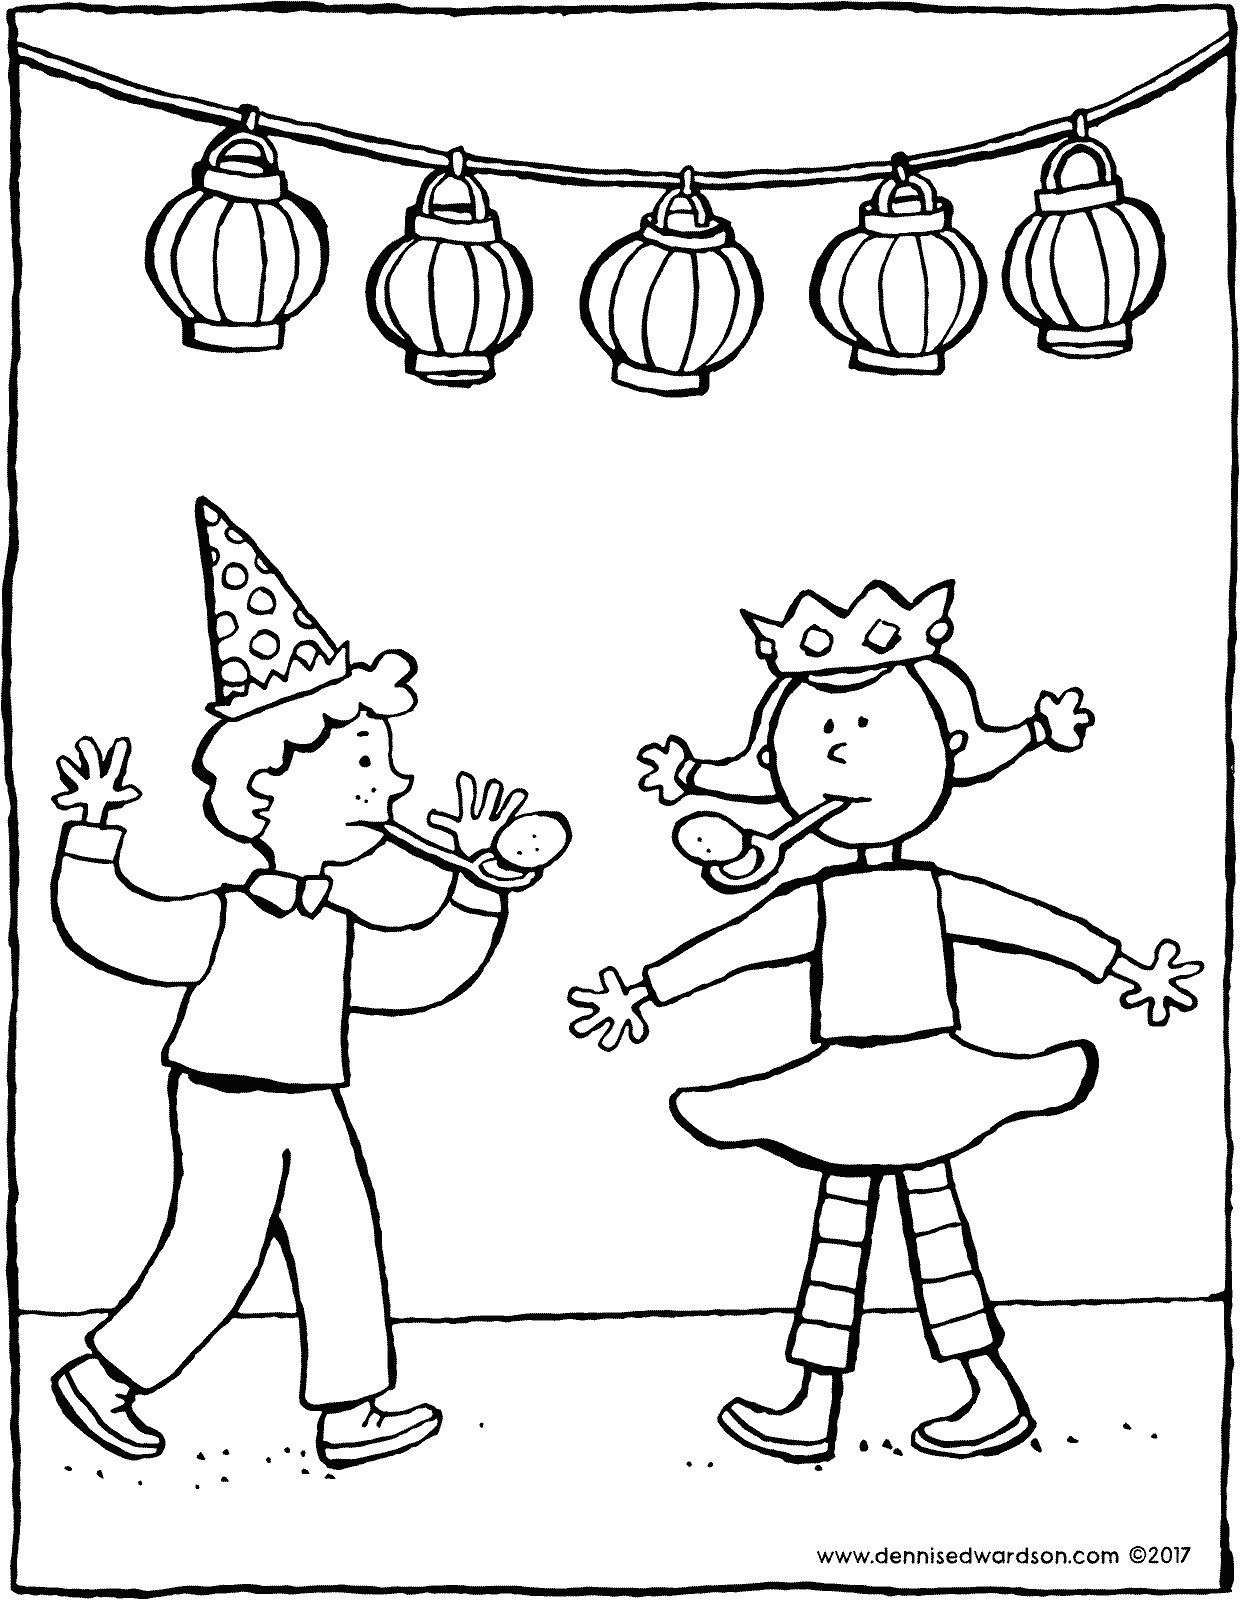 Birthday Party An Egg And Spoon Race At A Birthday Party Color The Coloring Page Using Bold Colors Birthday Coloring Pages Coloring Pages Blog Colors